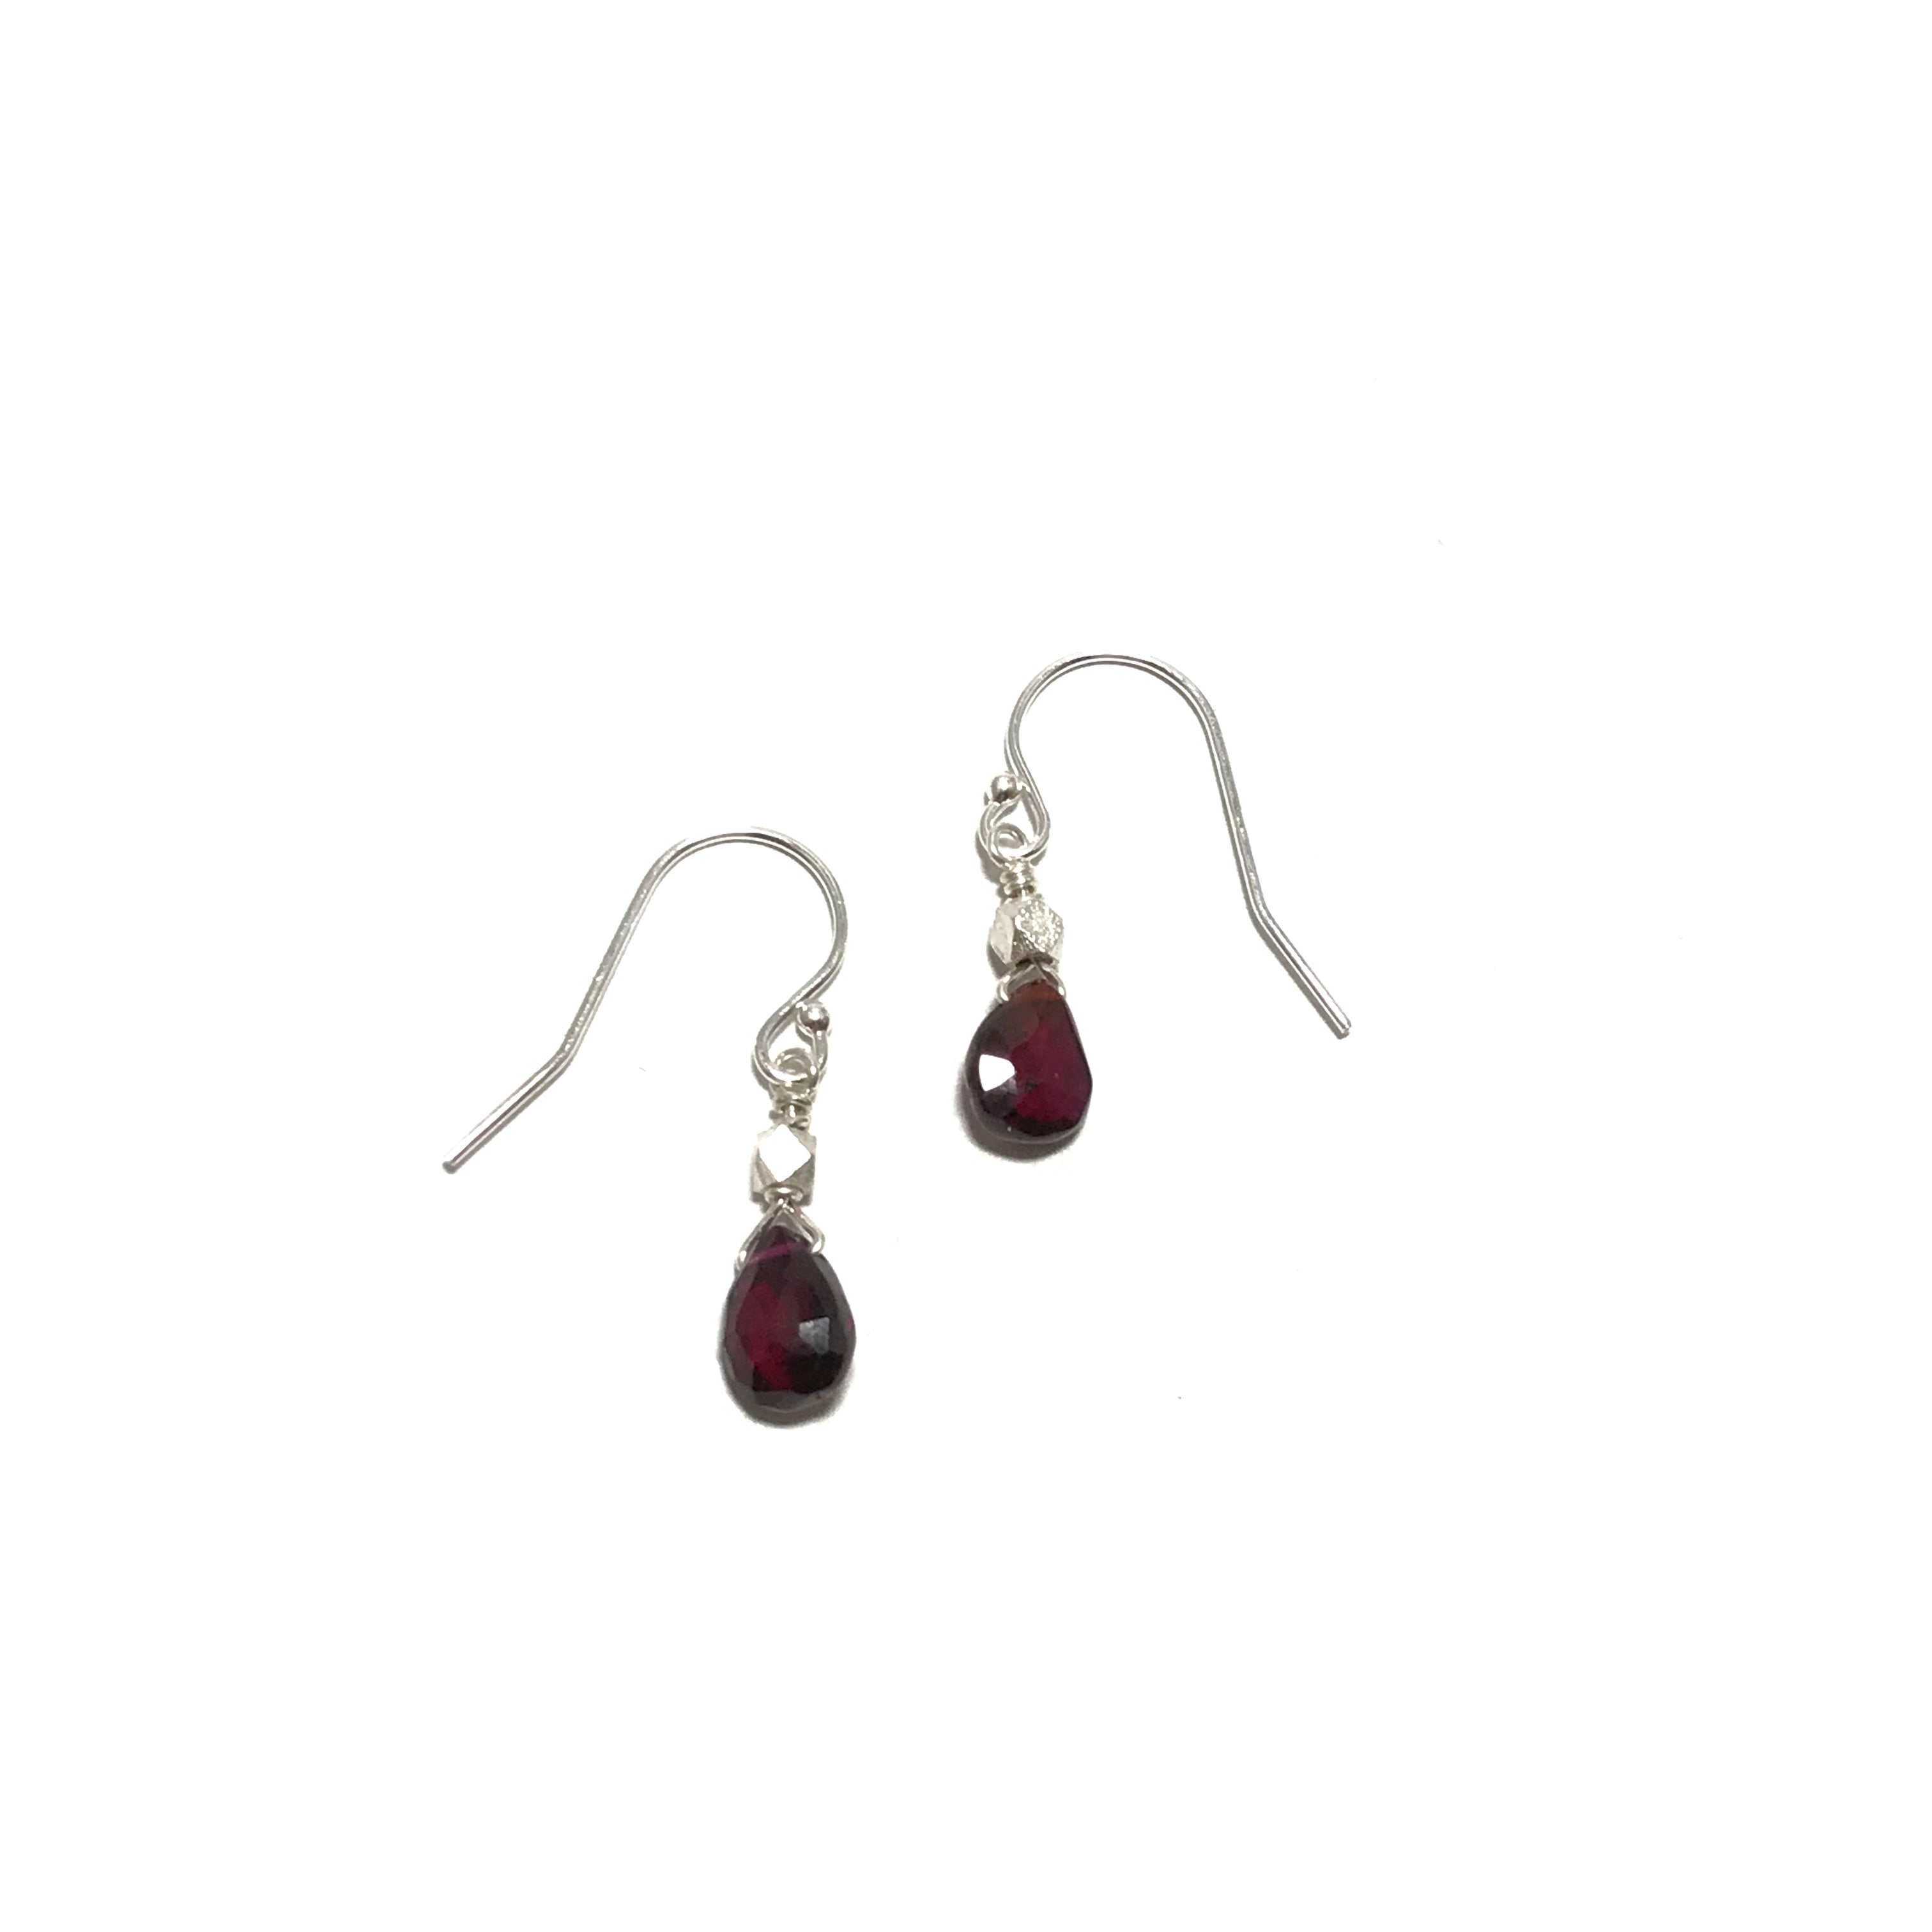 Meridian Garnet Briolette and Bead Earrings